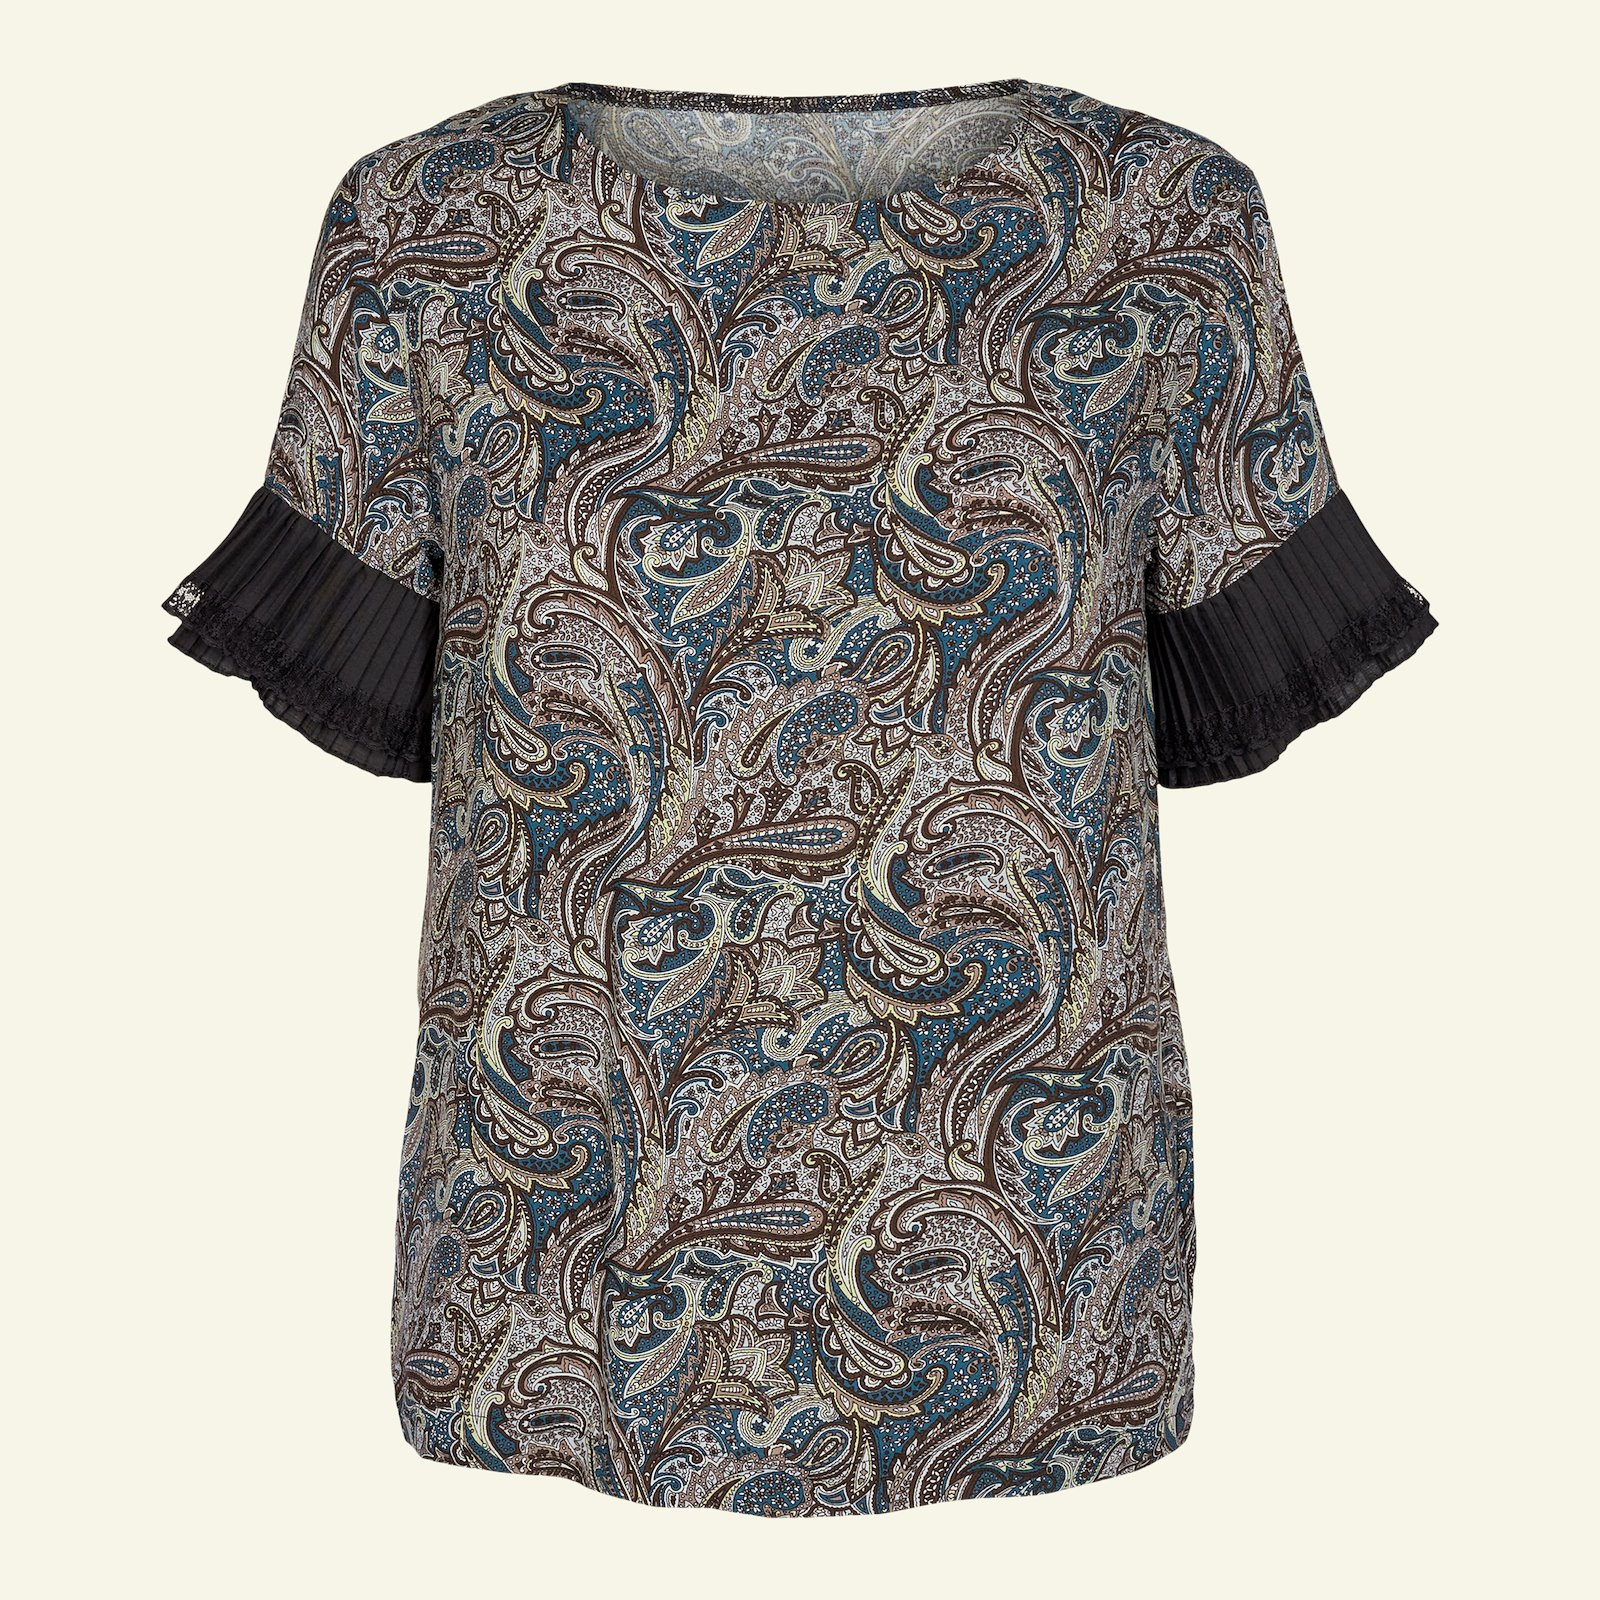 Blouse with flounce, 36/8 p22061_710632_96323_sskit